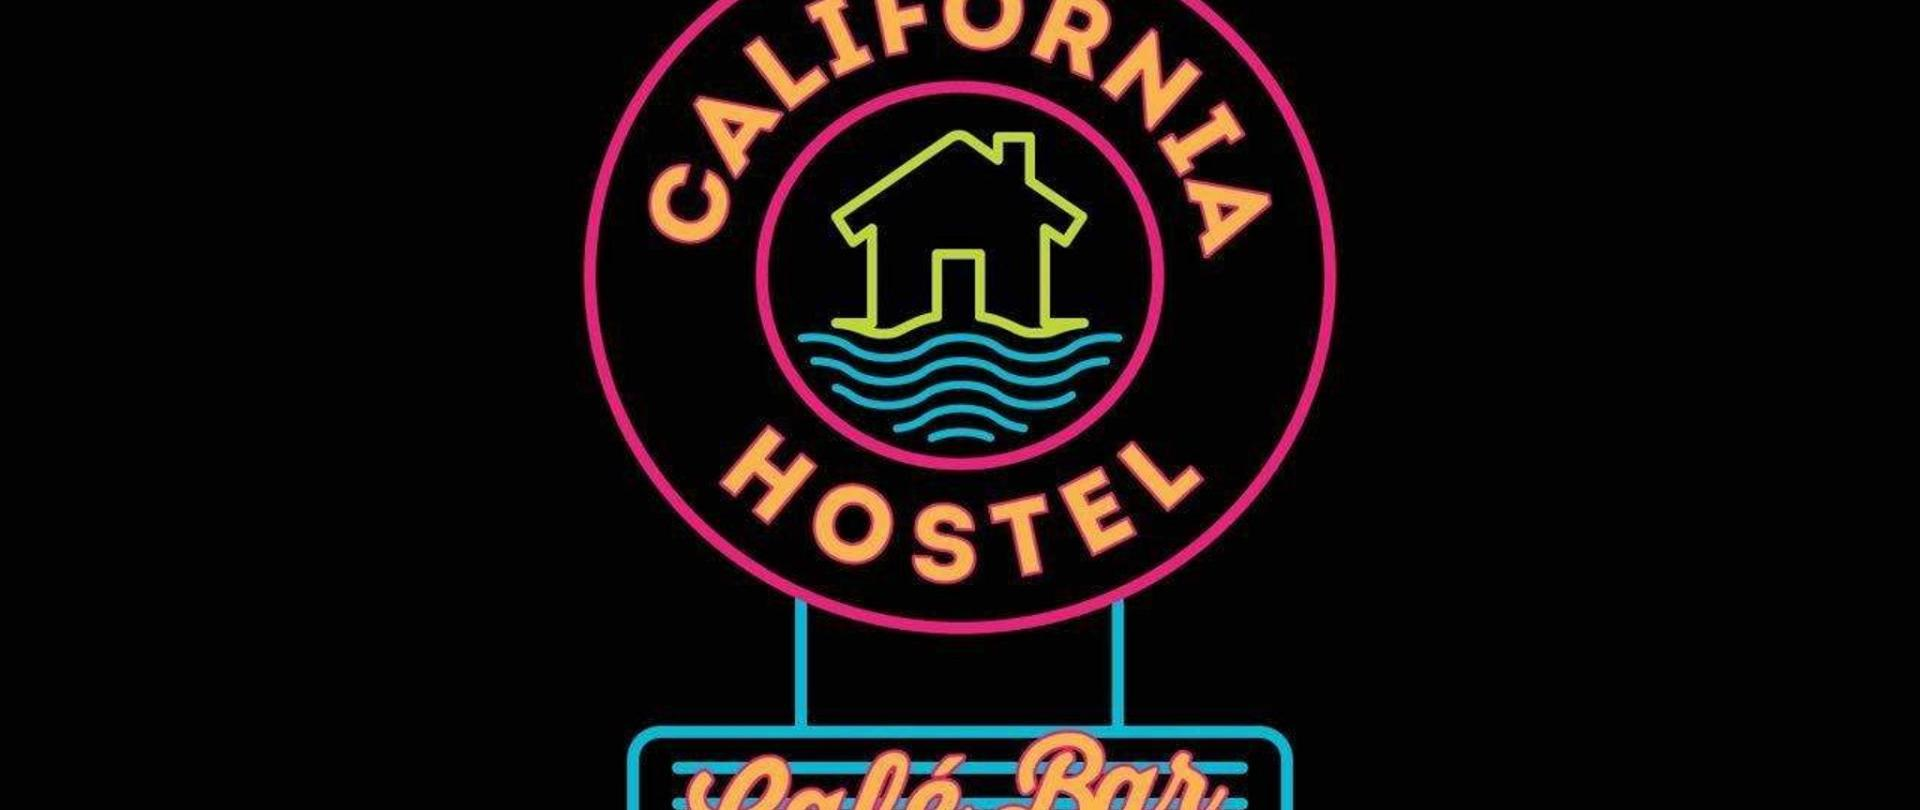 logo-final-hostel-califonia-cafe-bar-luminoso.jpg